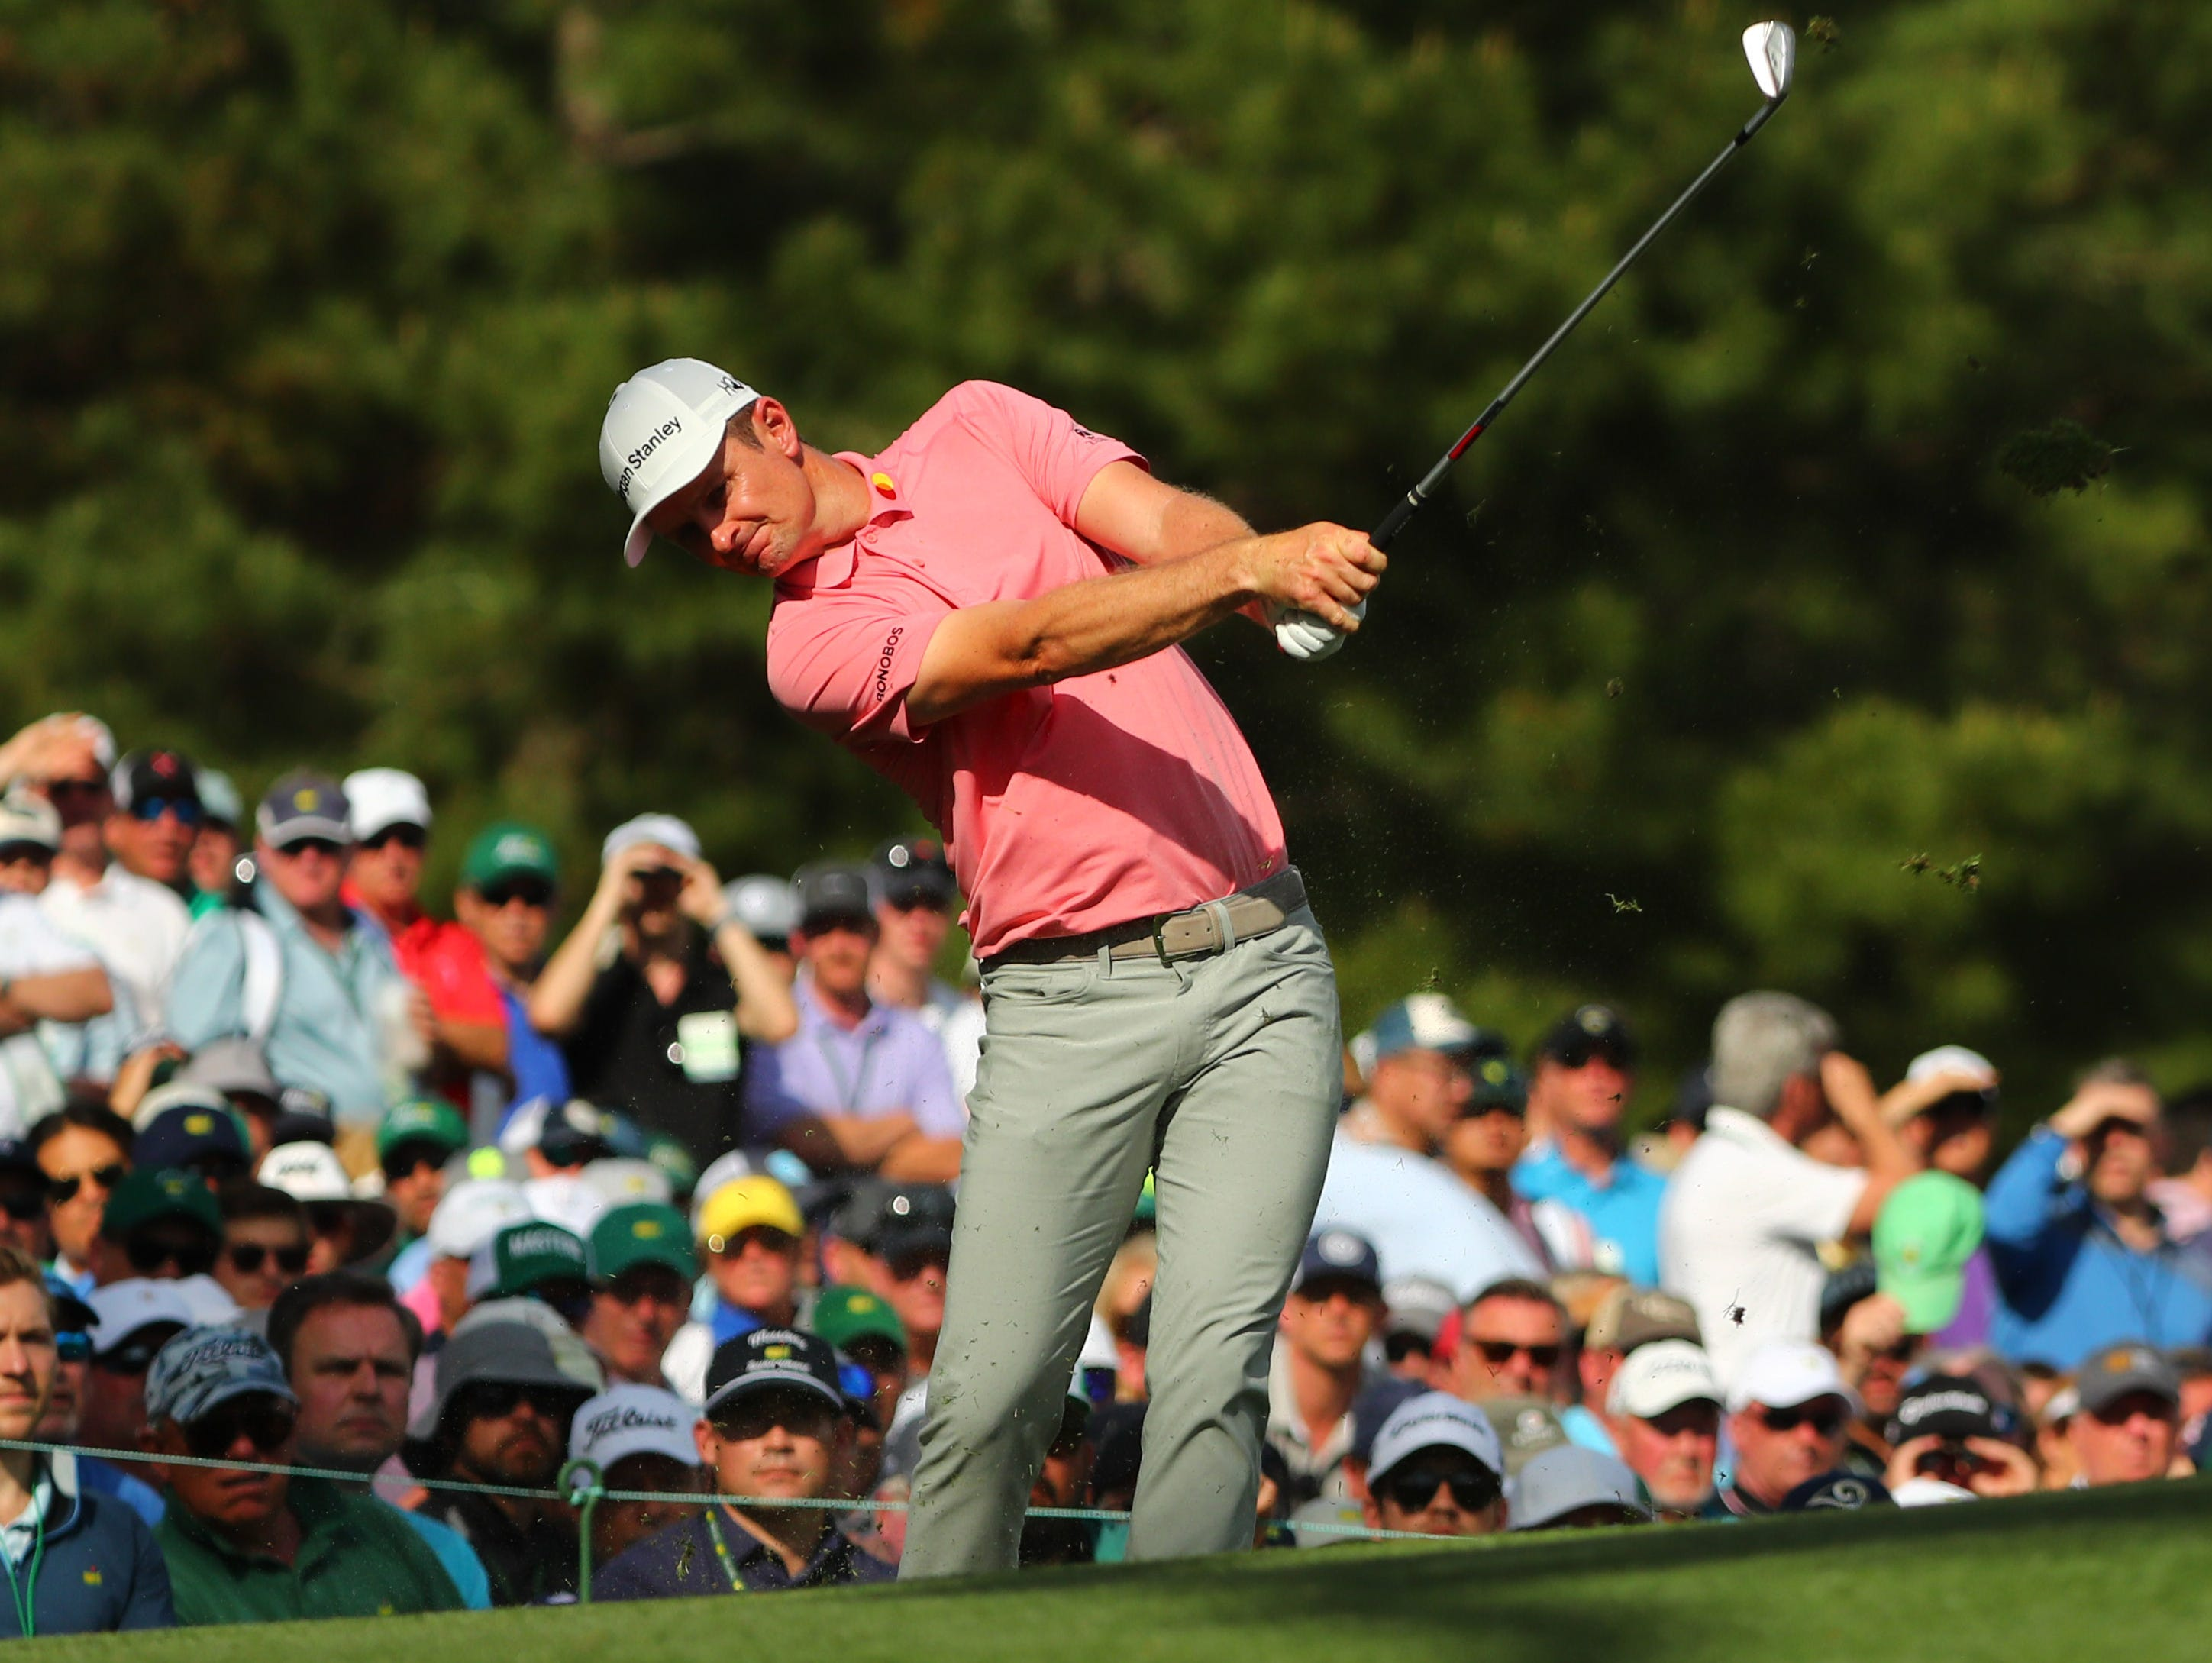 Justin Rose hits his tee shot on the 12th hole during the first round of the Masters.